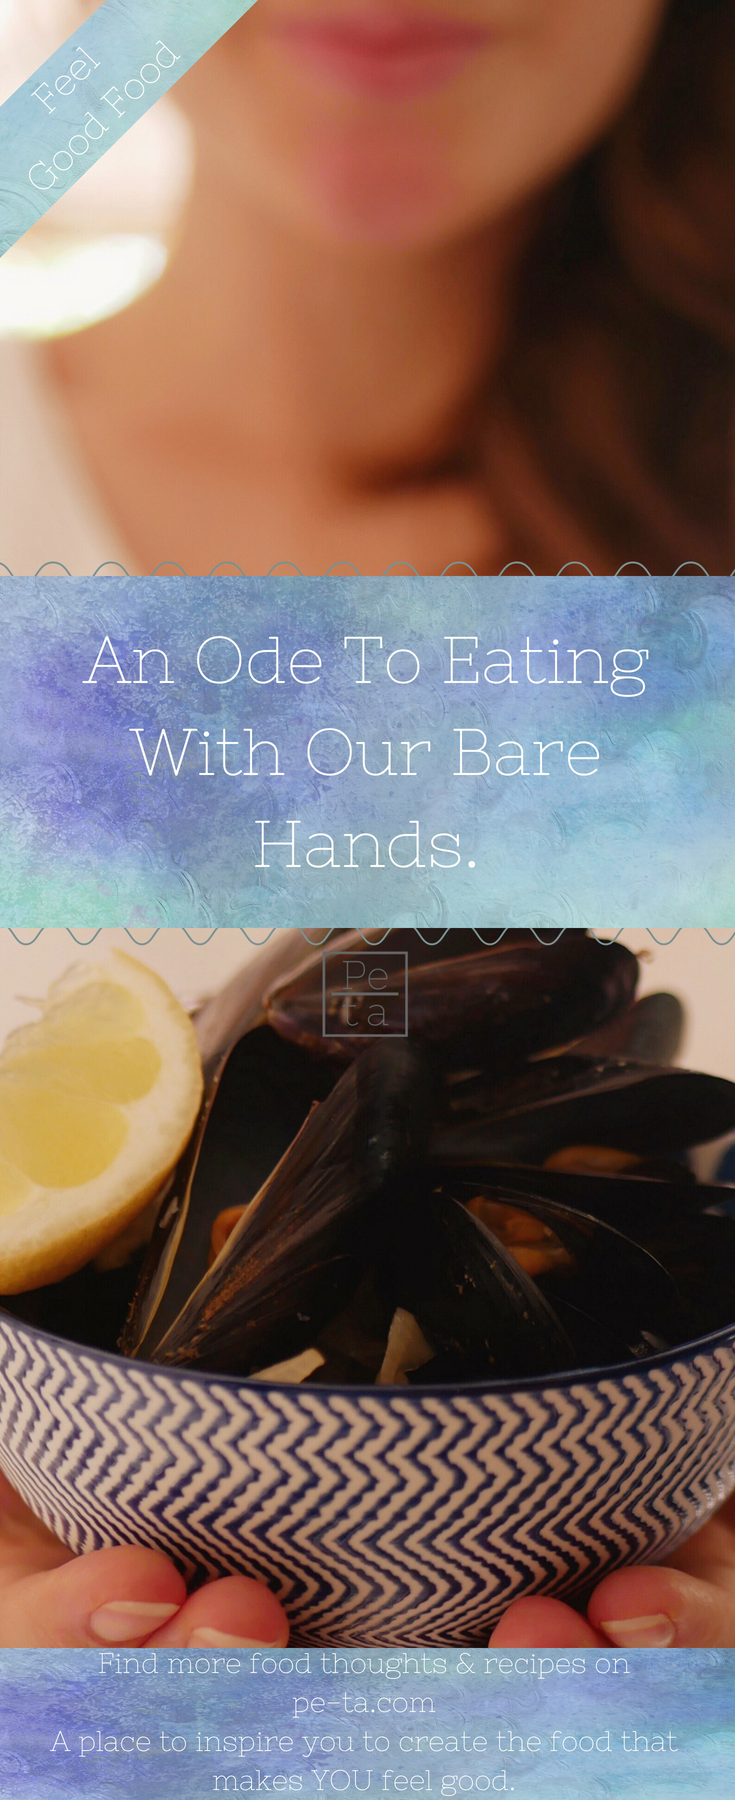 an ode to eating with bare hands.png